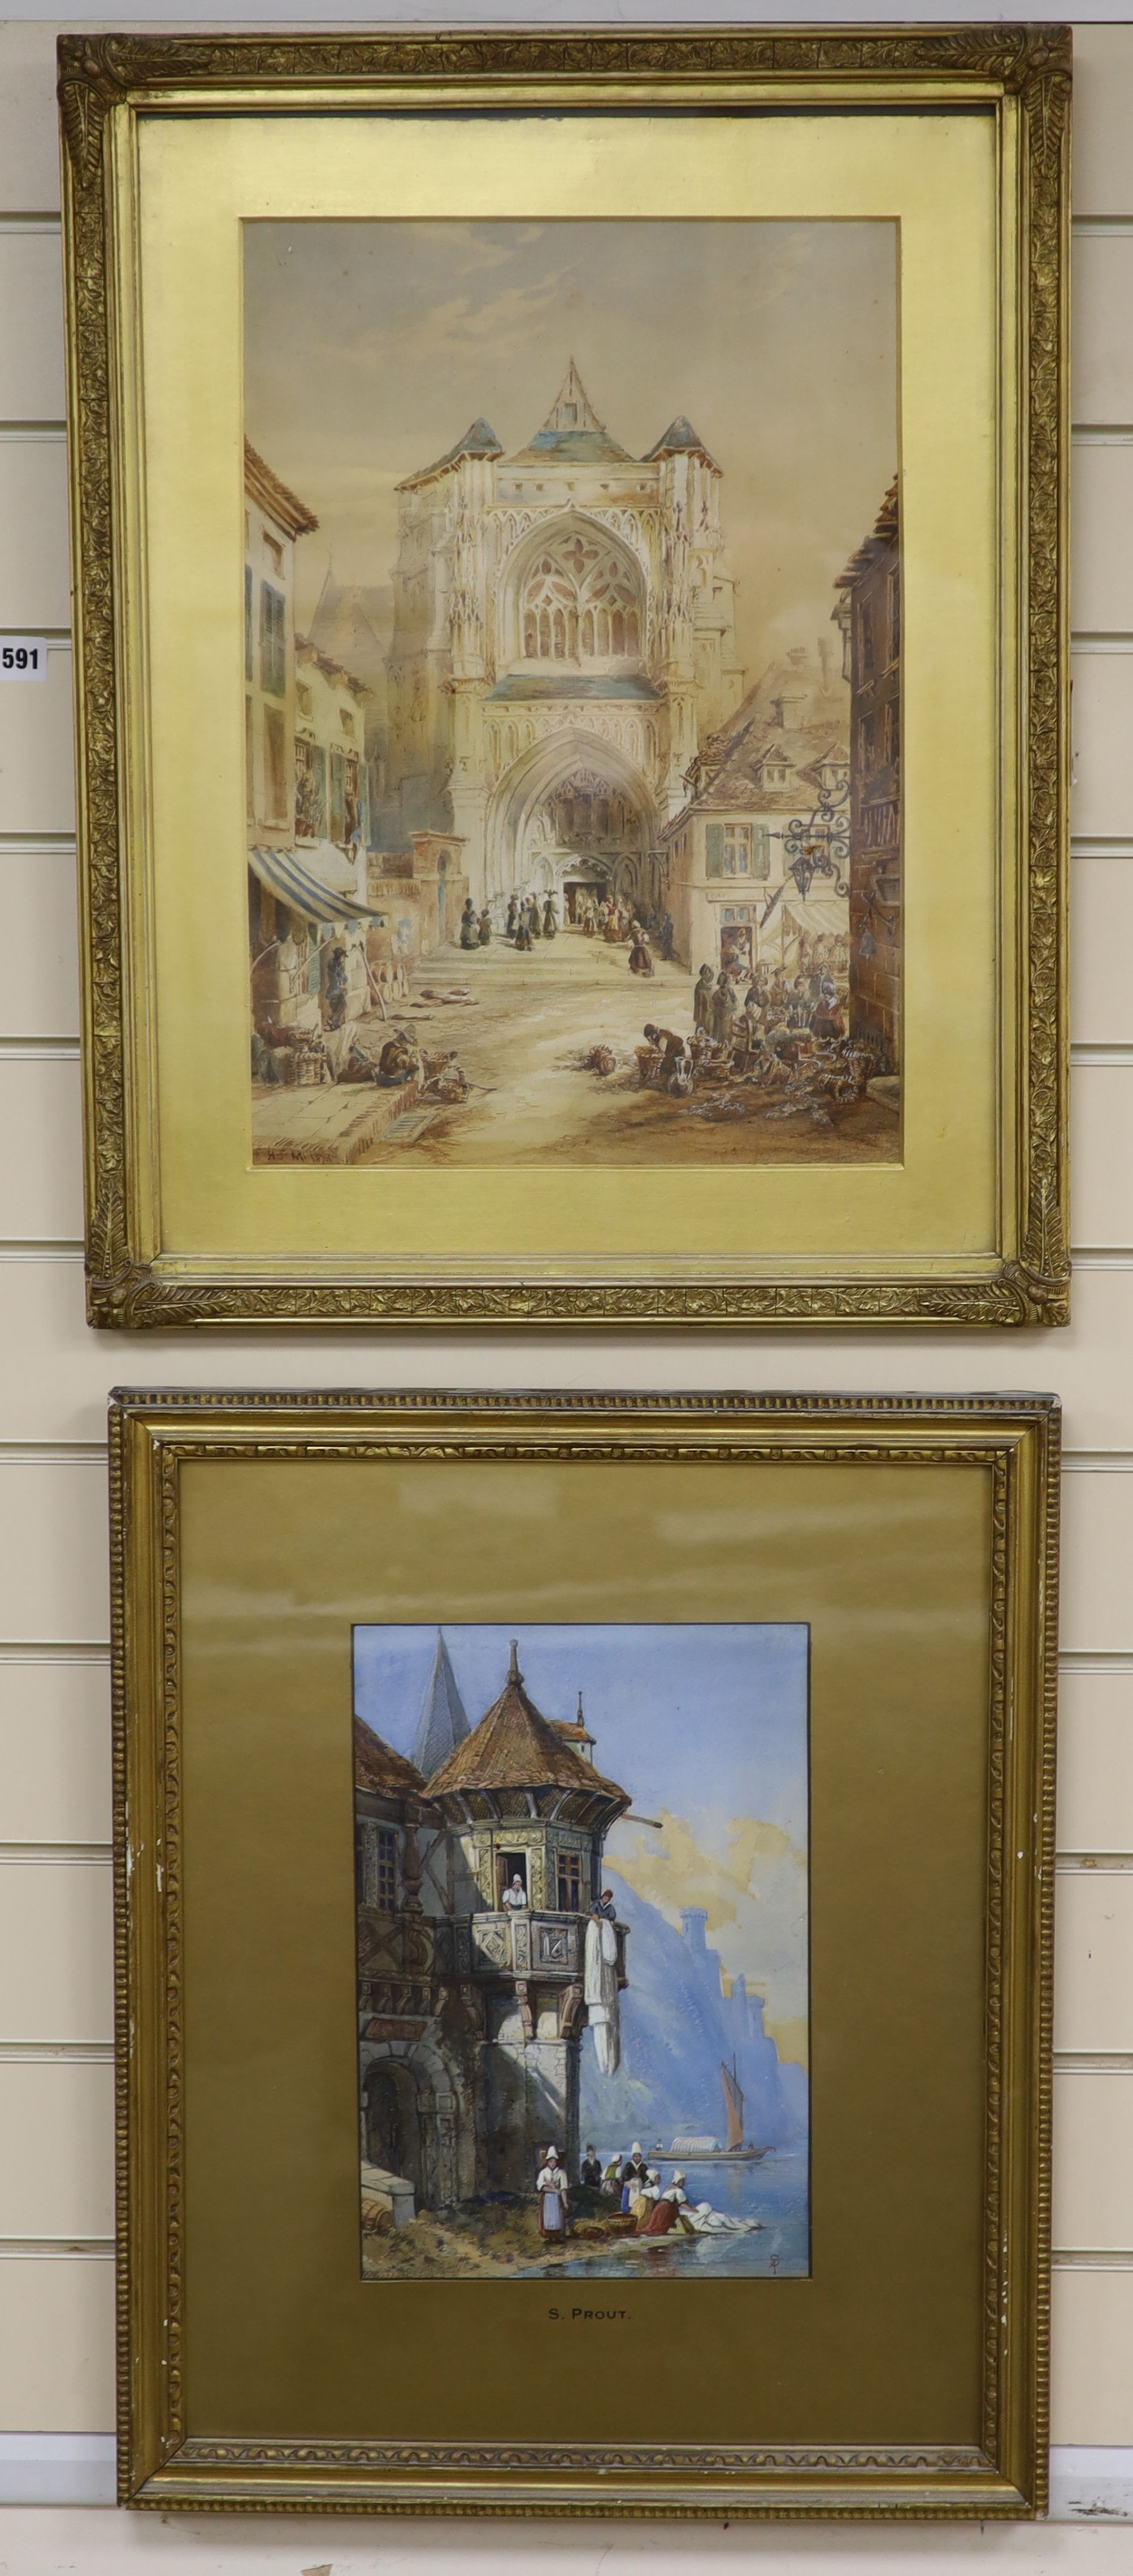 After Samuel Prout, watercolour, Lakeside houses, bears monogram, 33 x 22cm, and a watercolour of